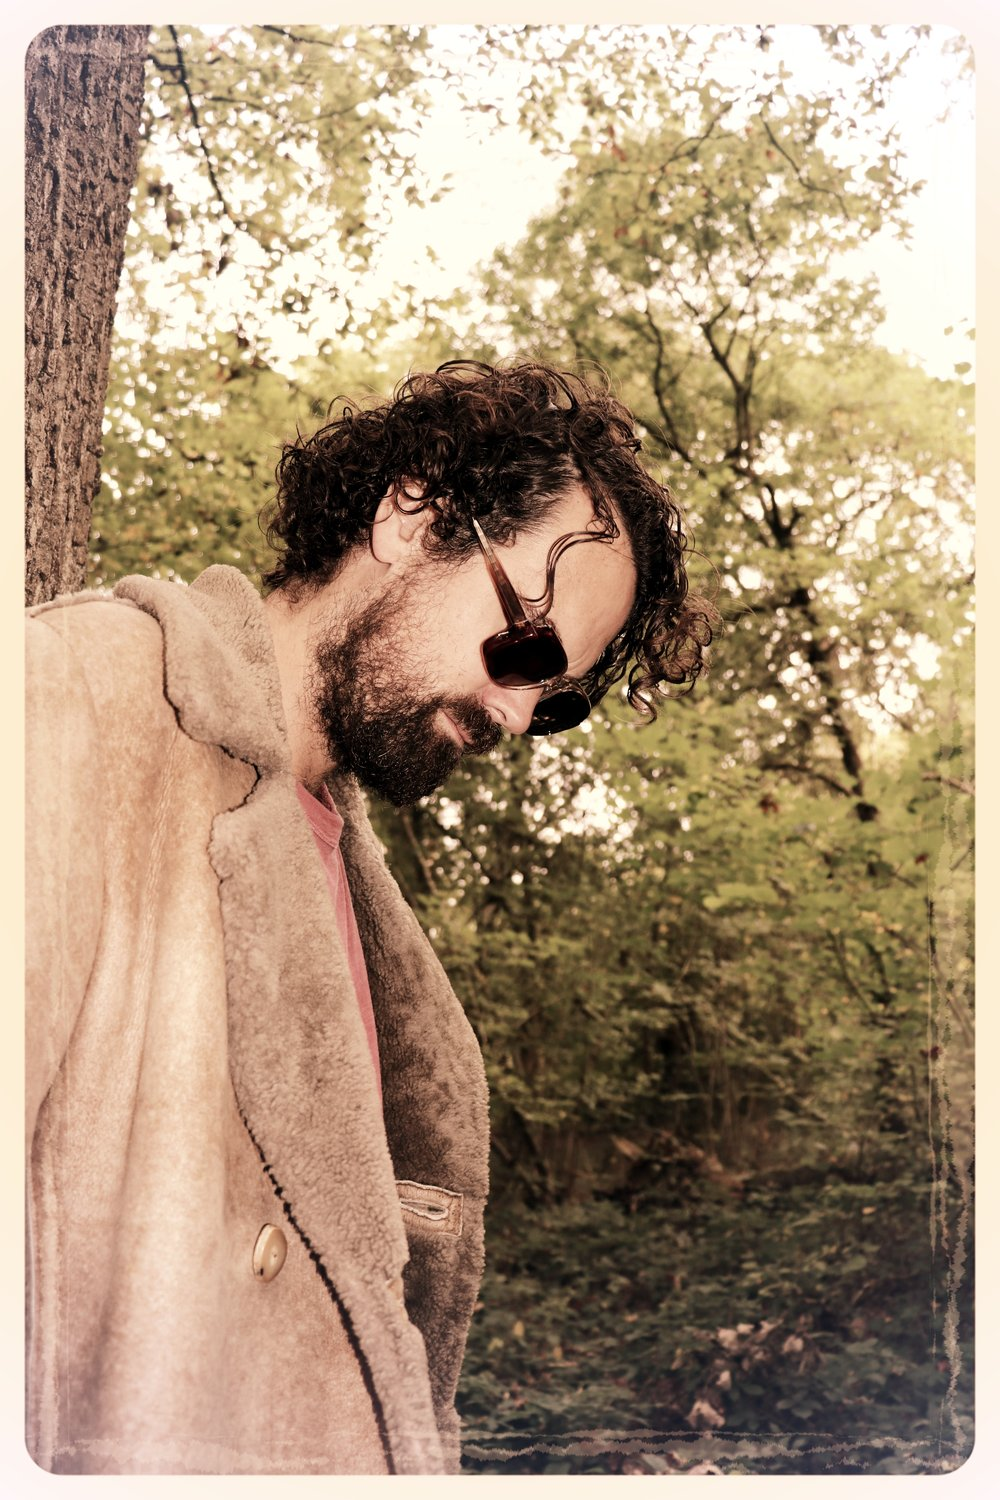 Peep Eyewear, Vintage Sunglasses, Worn against a tree, Autumn Winter Collection